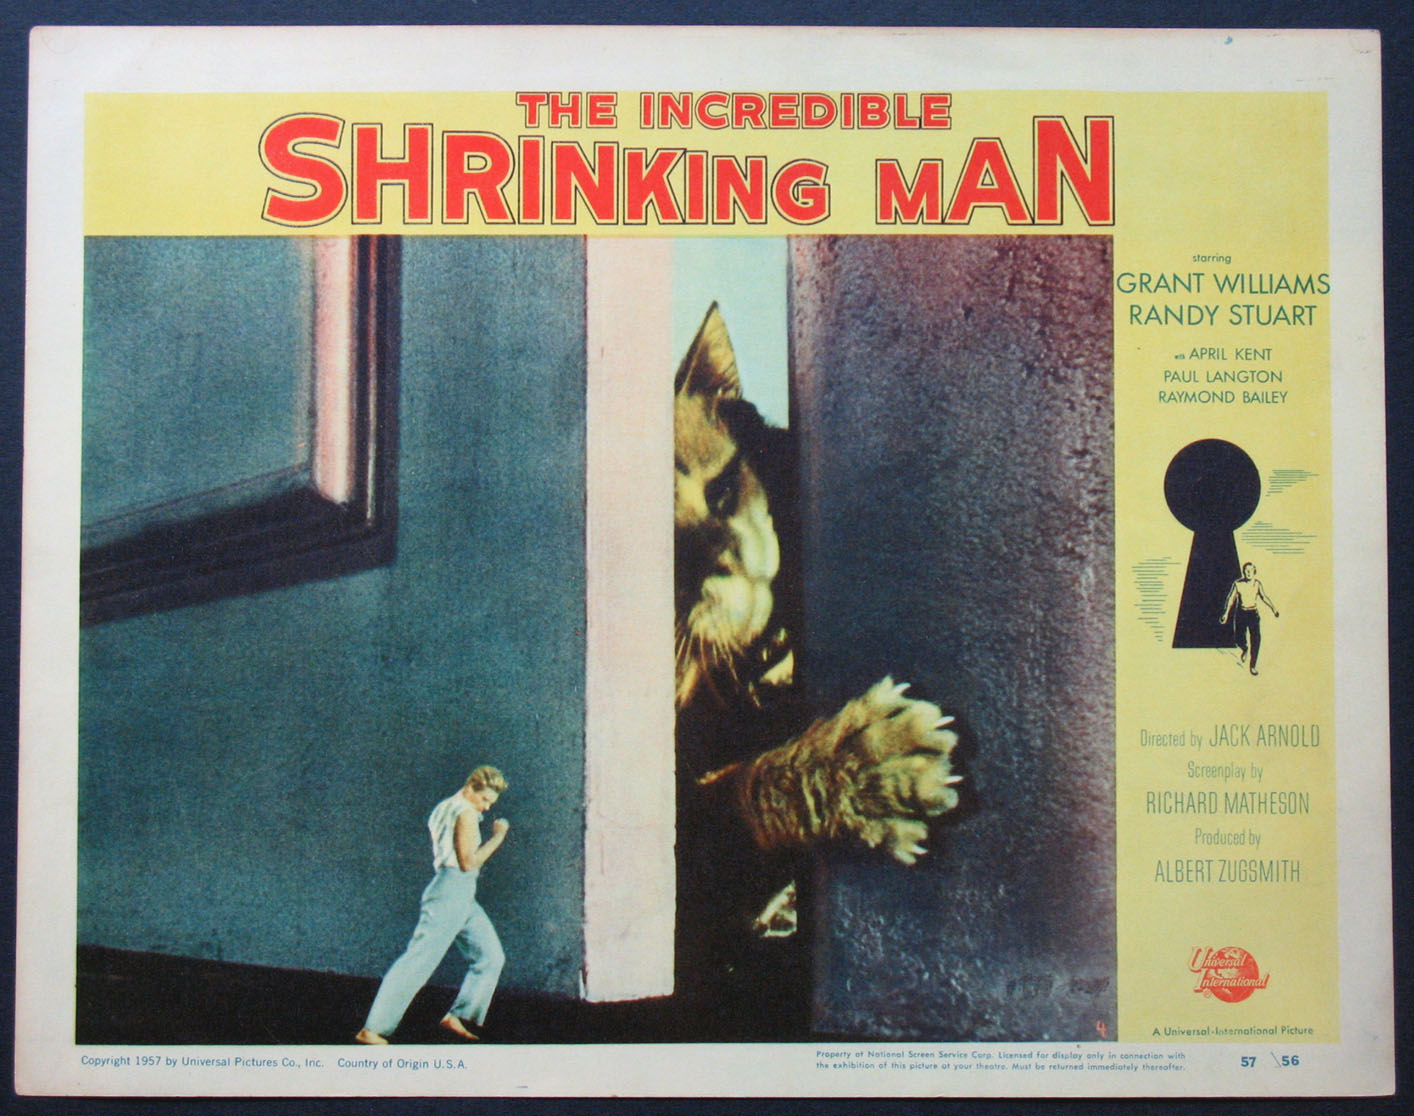 INCREDIBLE SHRINKING MAN, THE @ FilmPosters.com